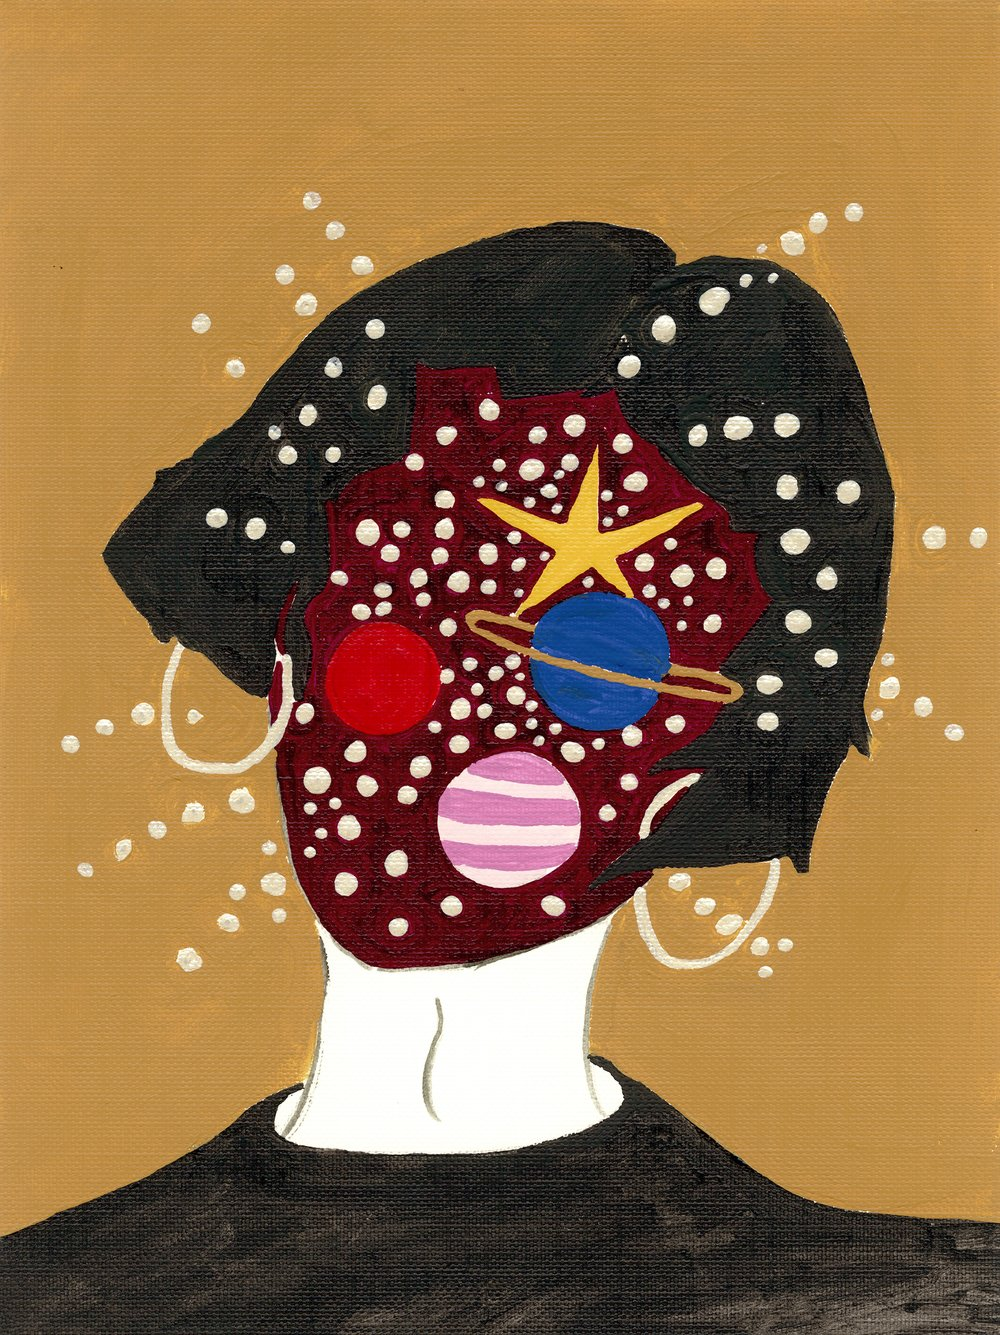 Space Cadet - Acrylic on canvas by Jen Yih